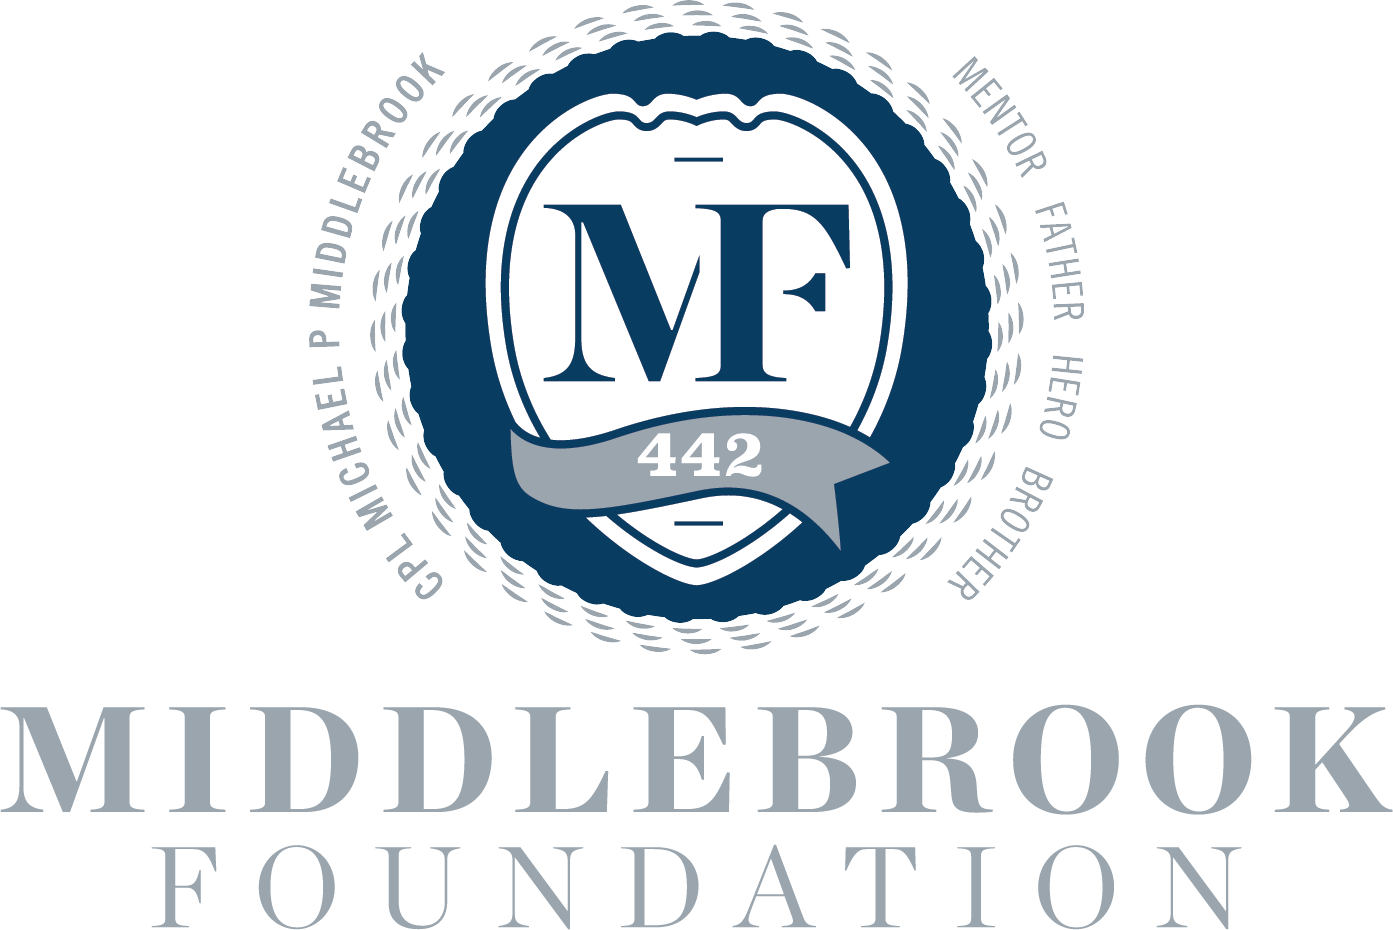 Middlebrook Foundation